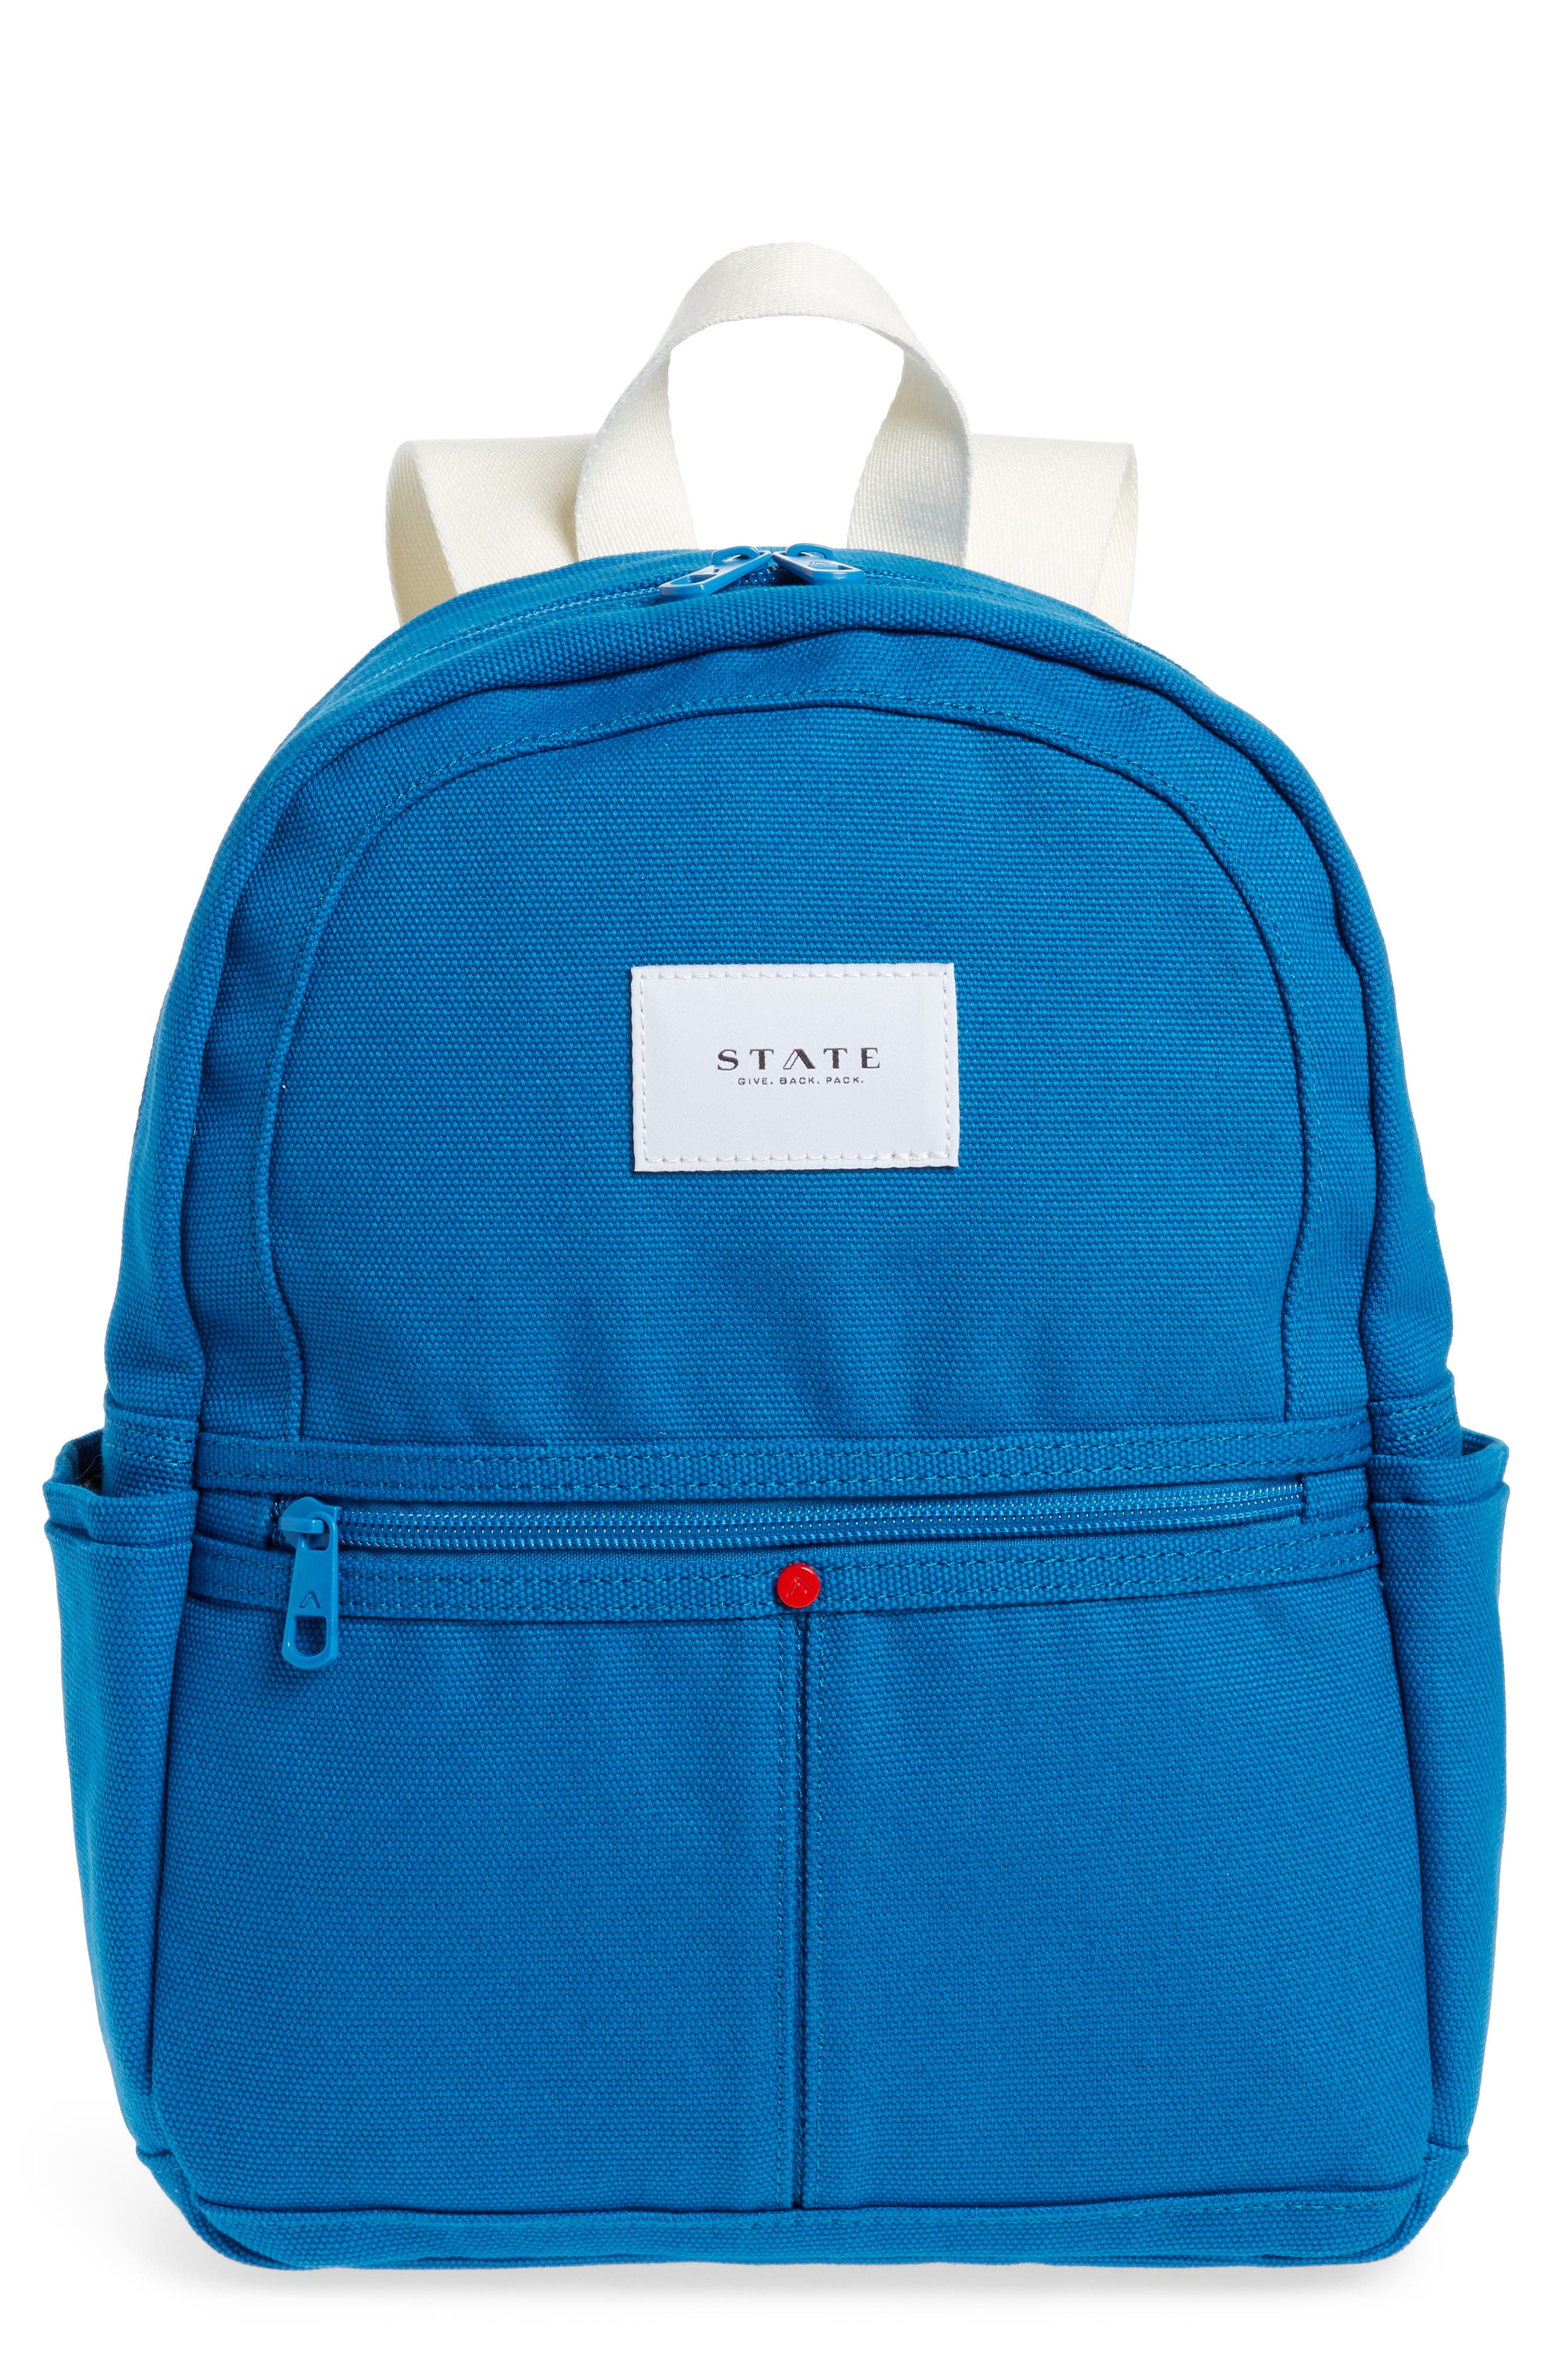 Kensington Mini Kane Canvas Backpack,                             Main thumbnail 1, color,                             POOL